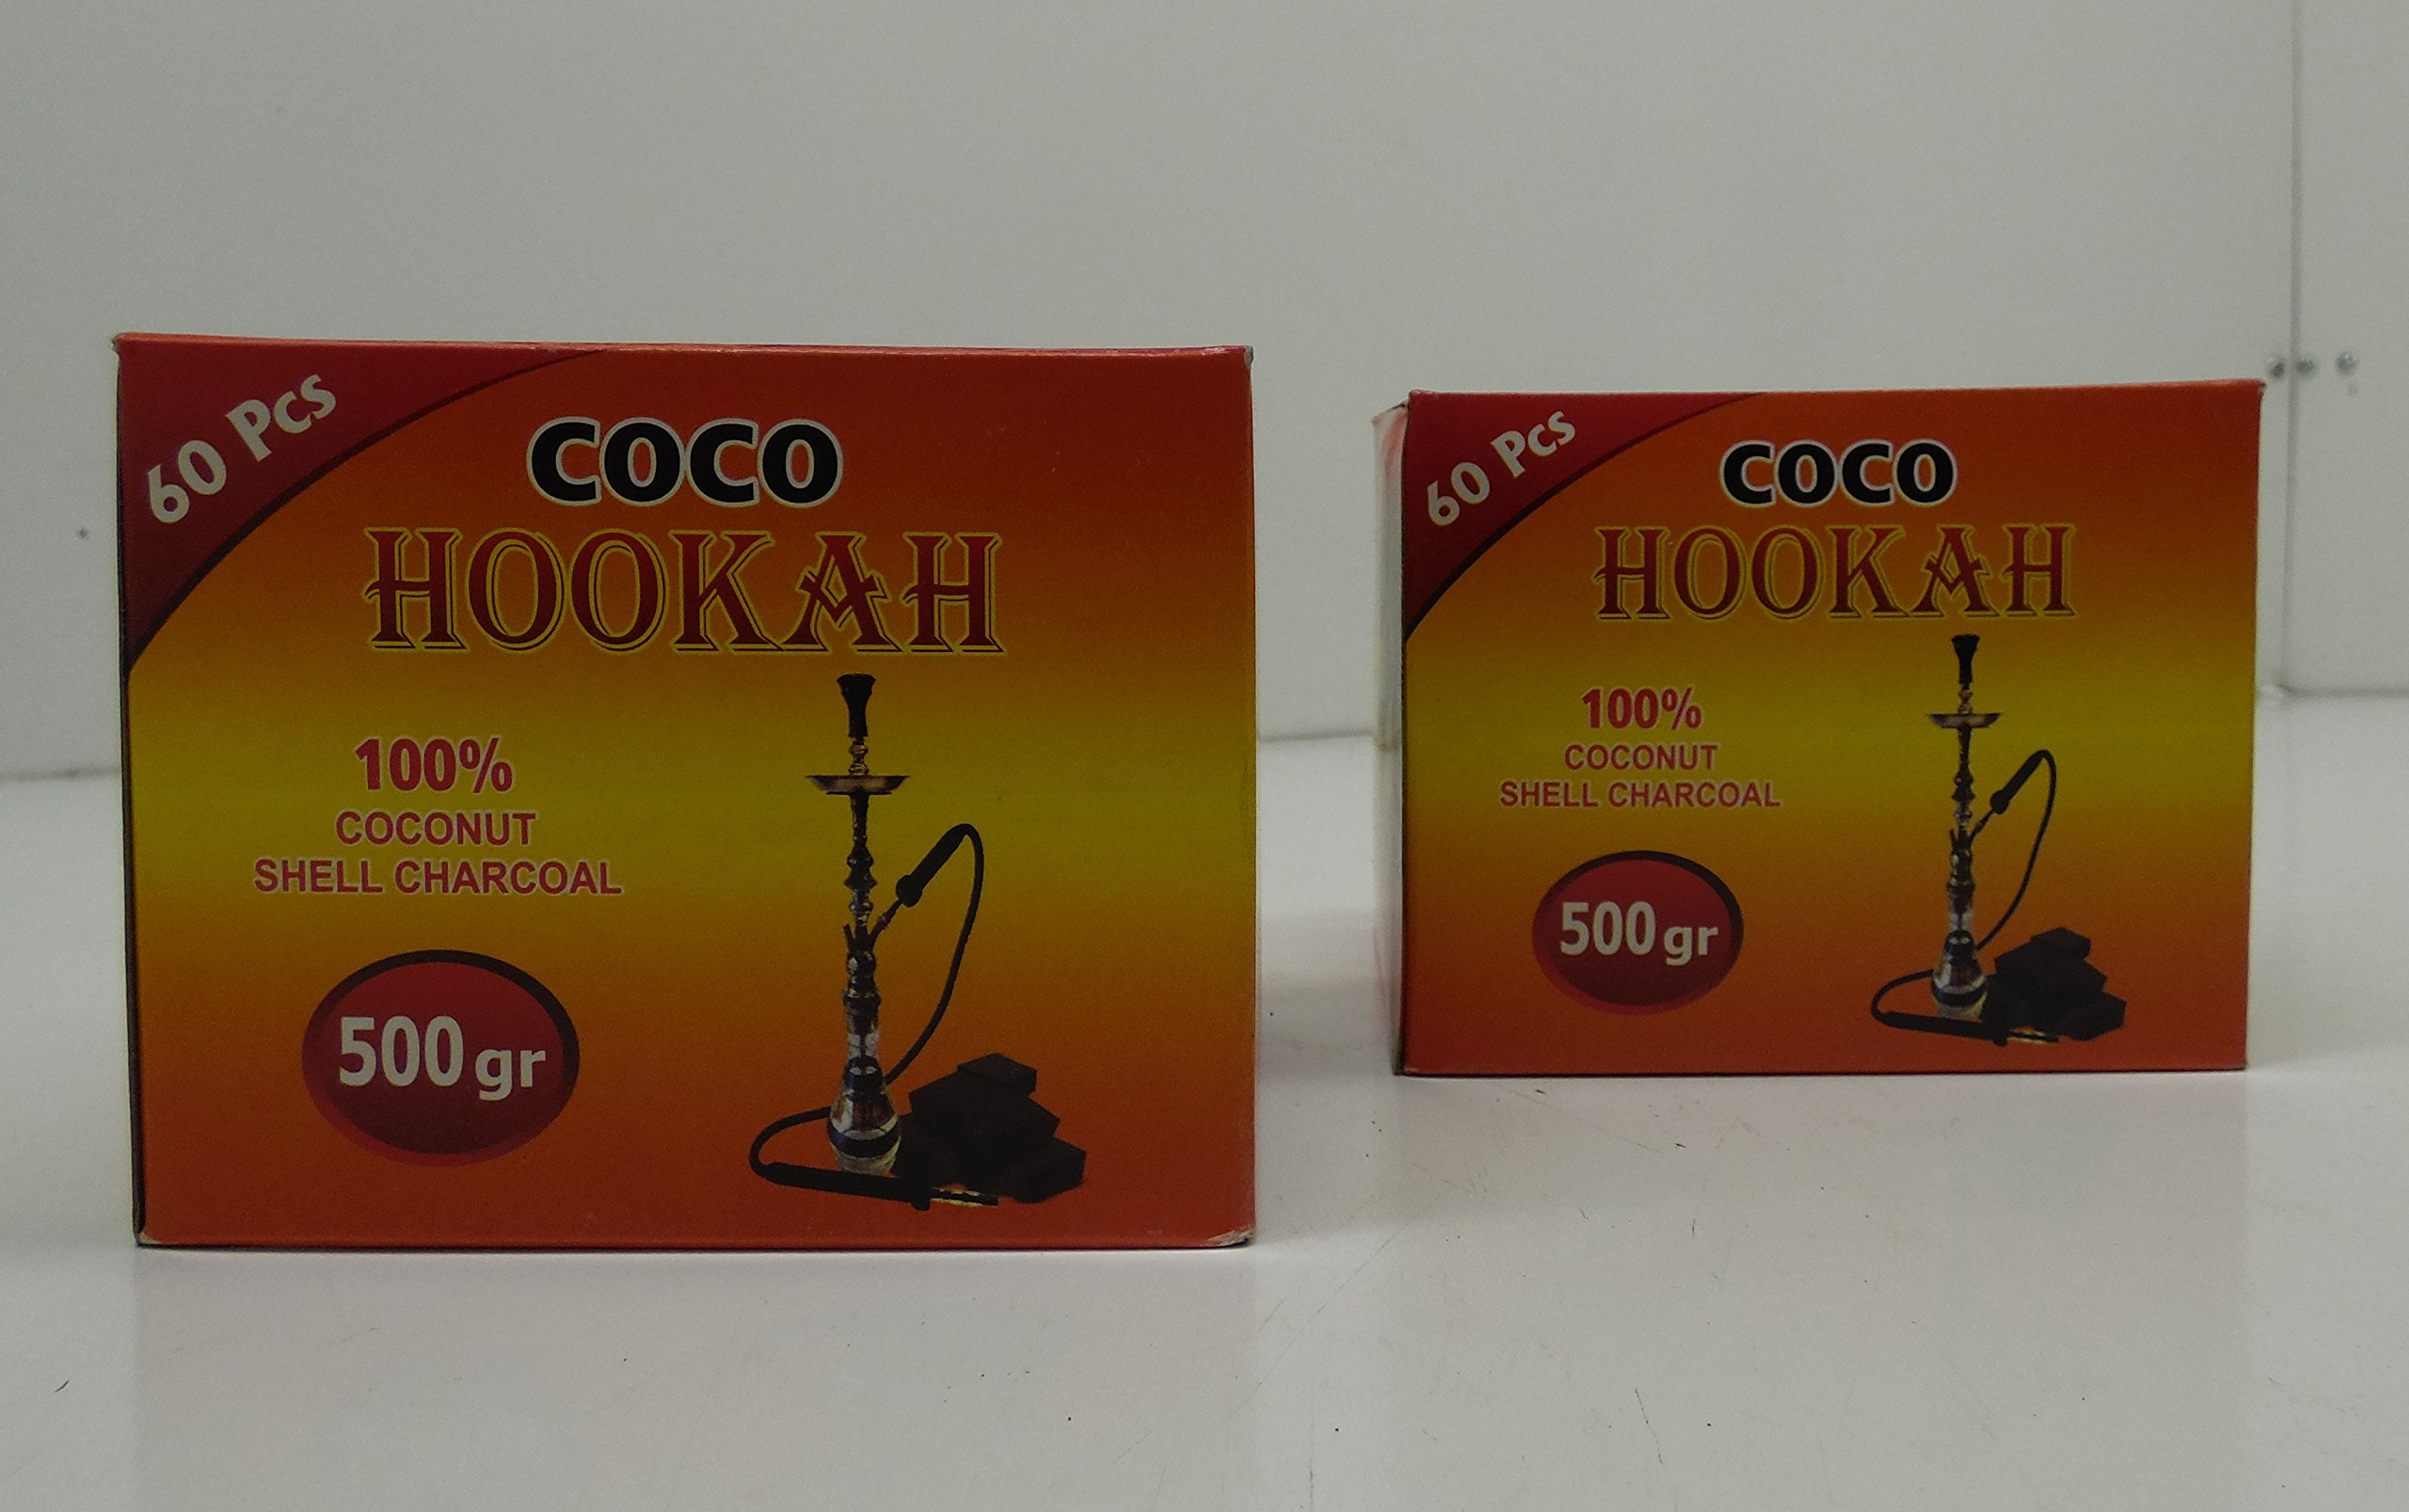 Coco Hookah 100% Coconut Shell Charcoal (60 Pieces (500Gr) 2 Pack)